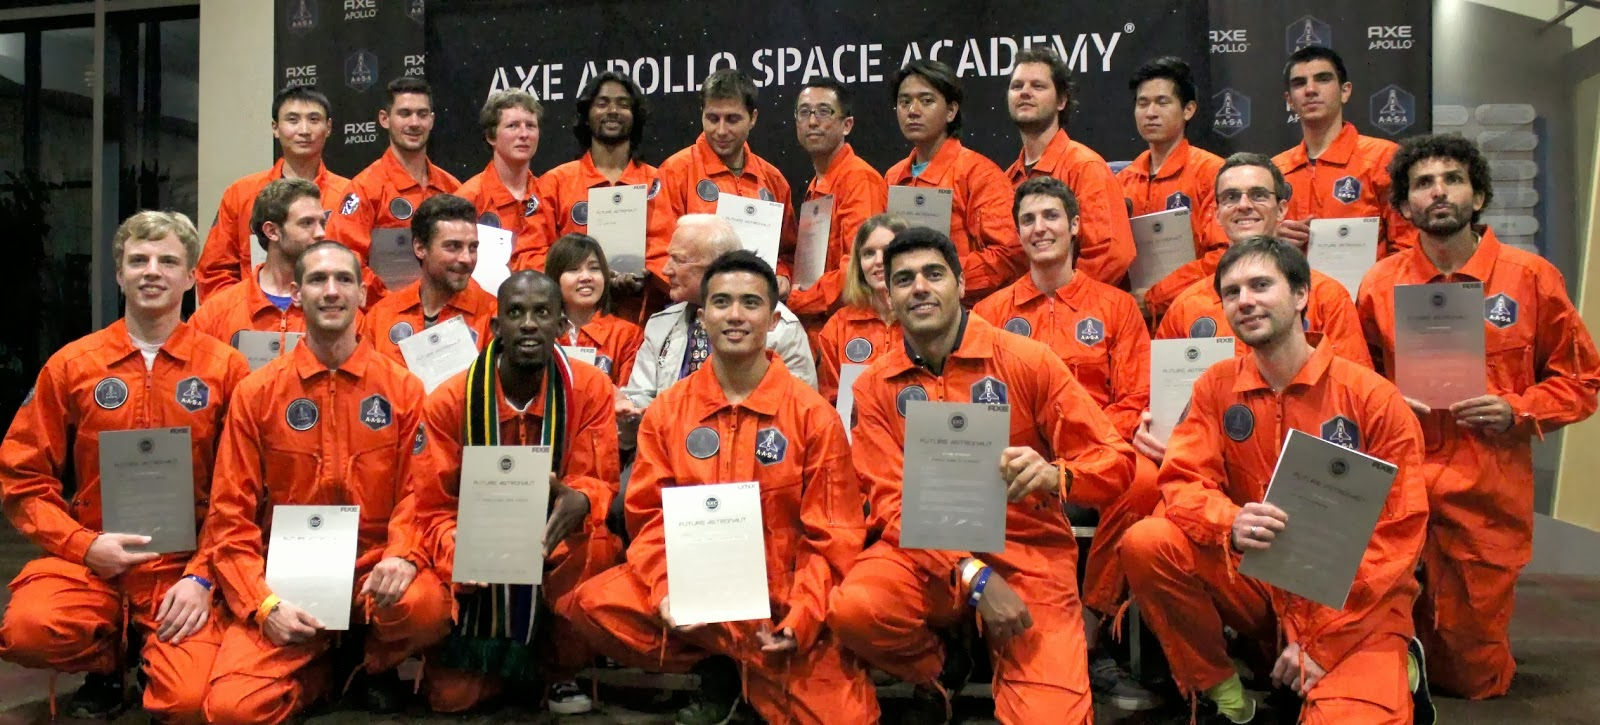 apollo space academy - photo #38